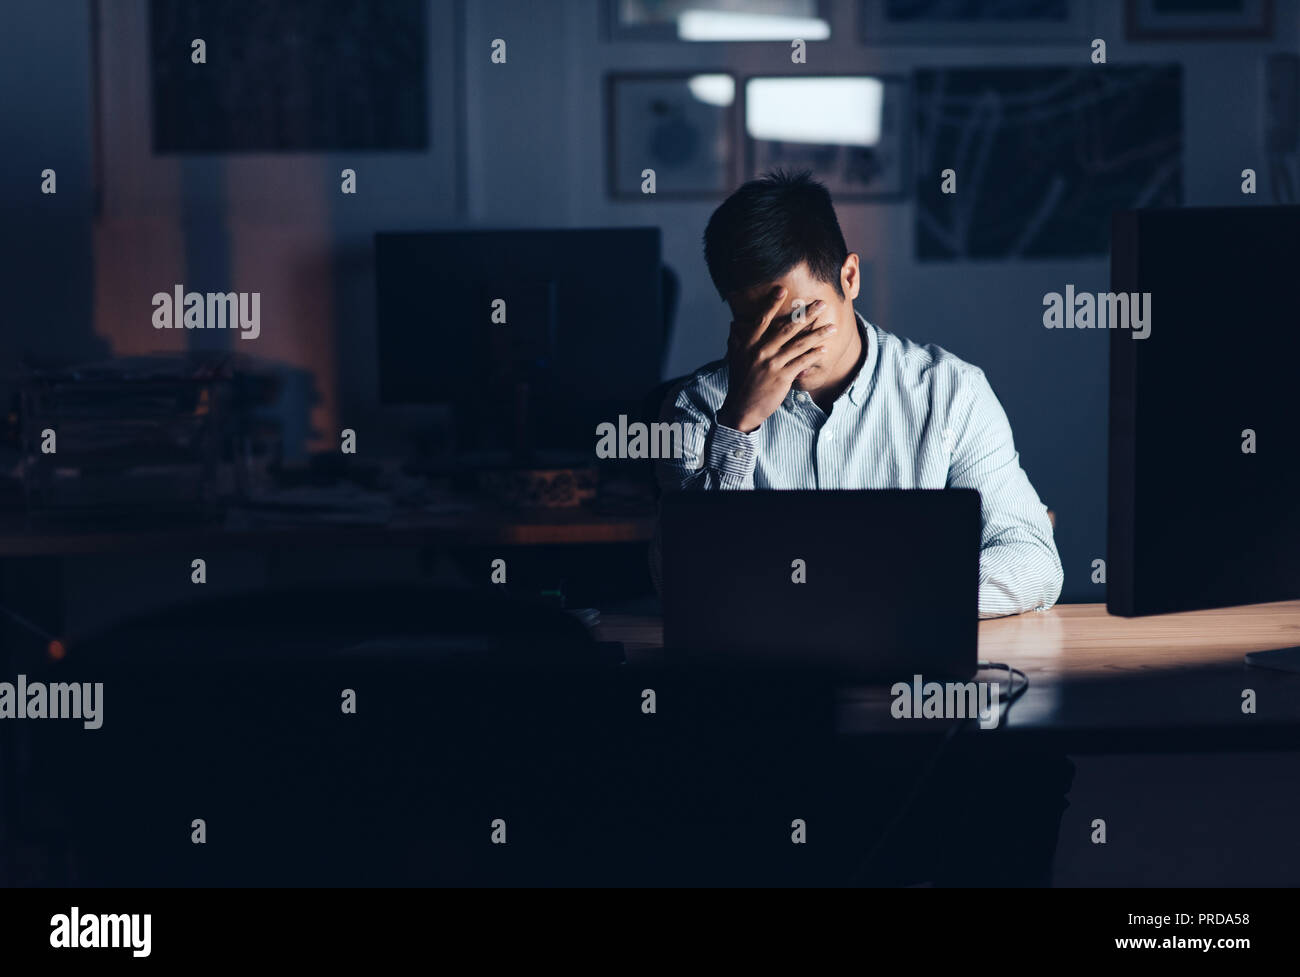 Exhausted Asian businessman working late at night in an office - Stock Image